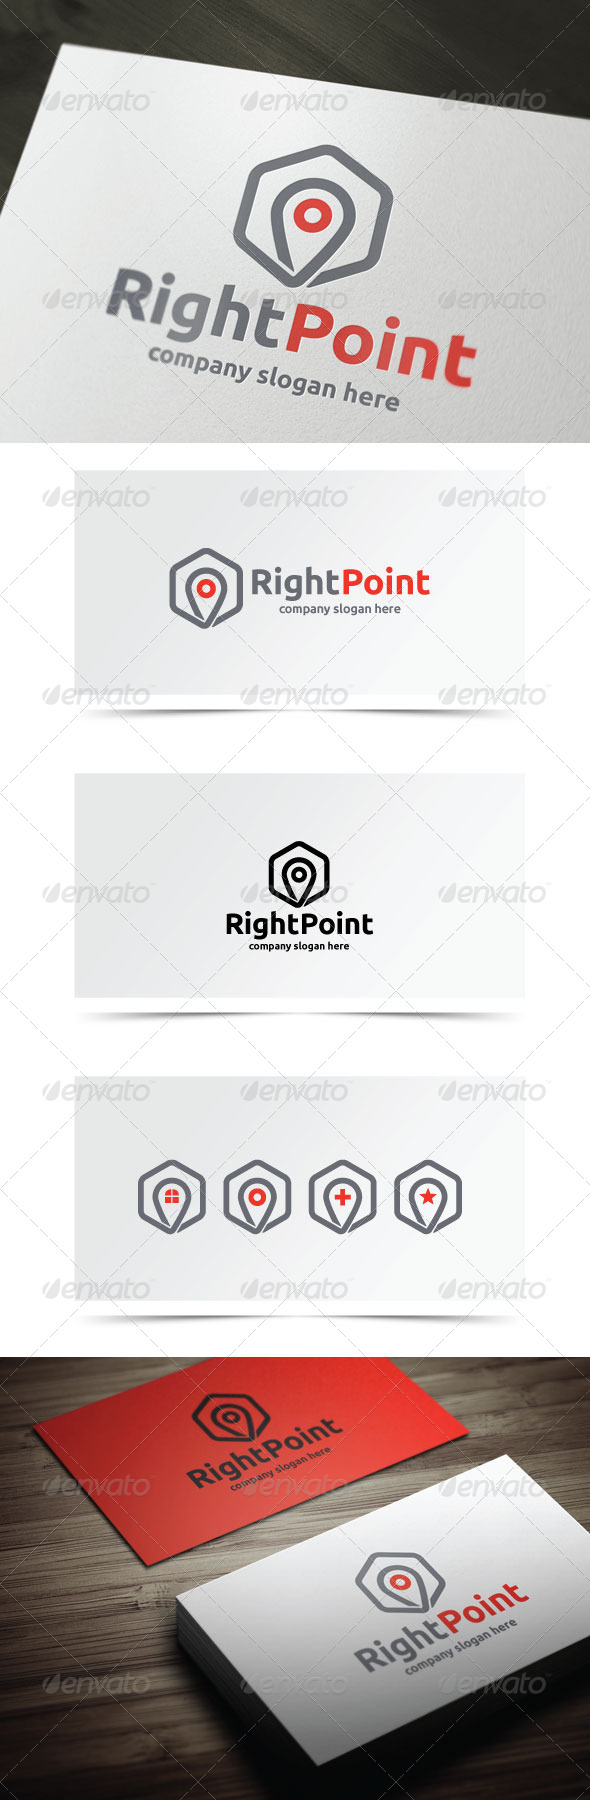 GraphicRiver Right Point 6853113